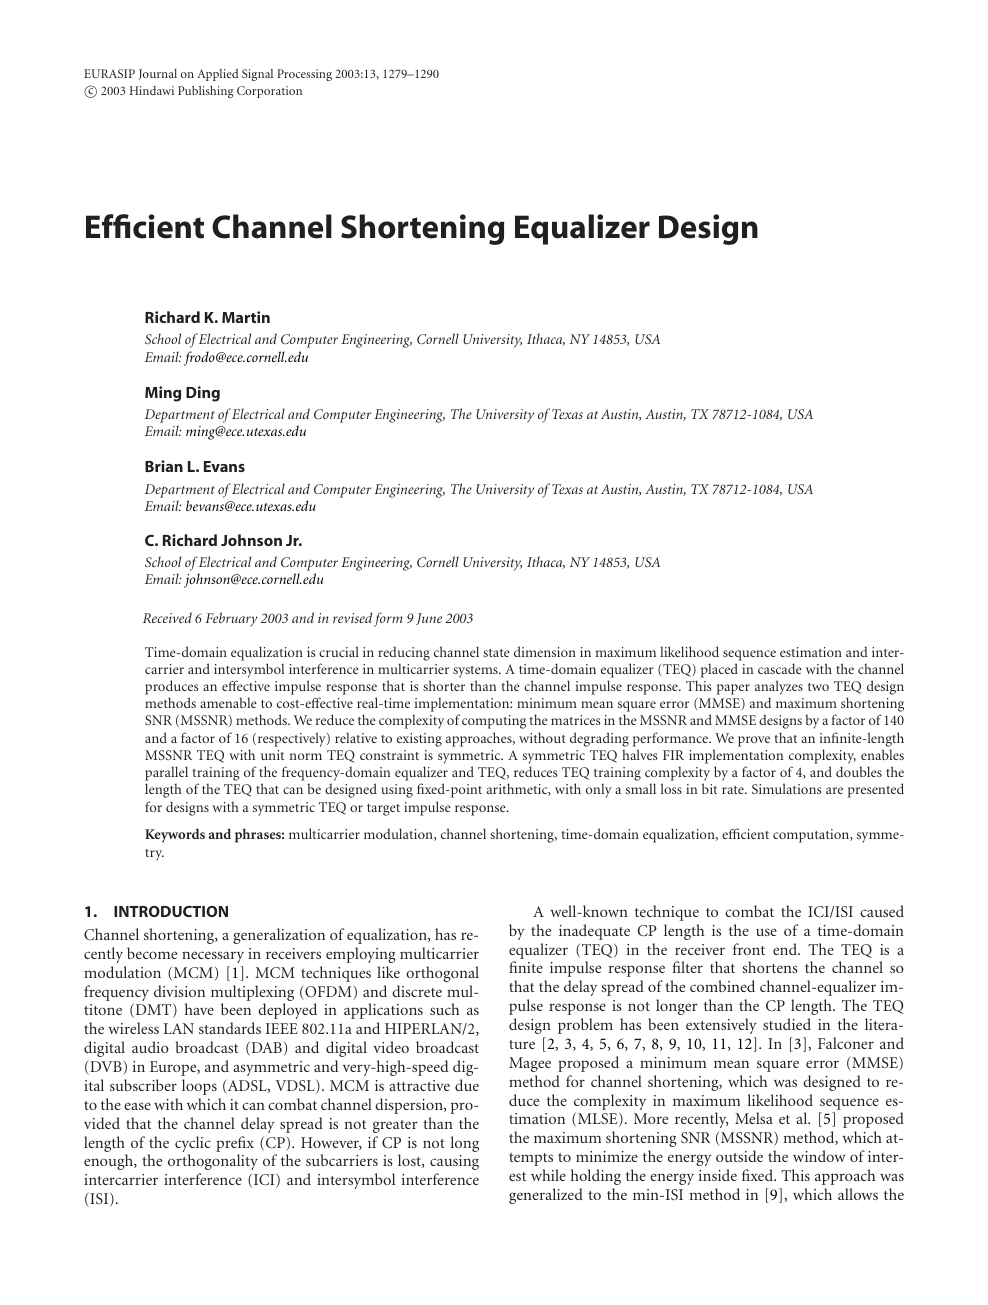 Efficient Channel Shortening Equalizer Design – topic of research